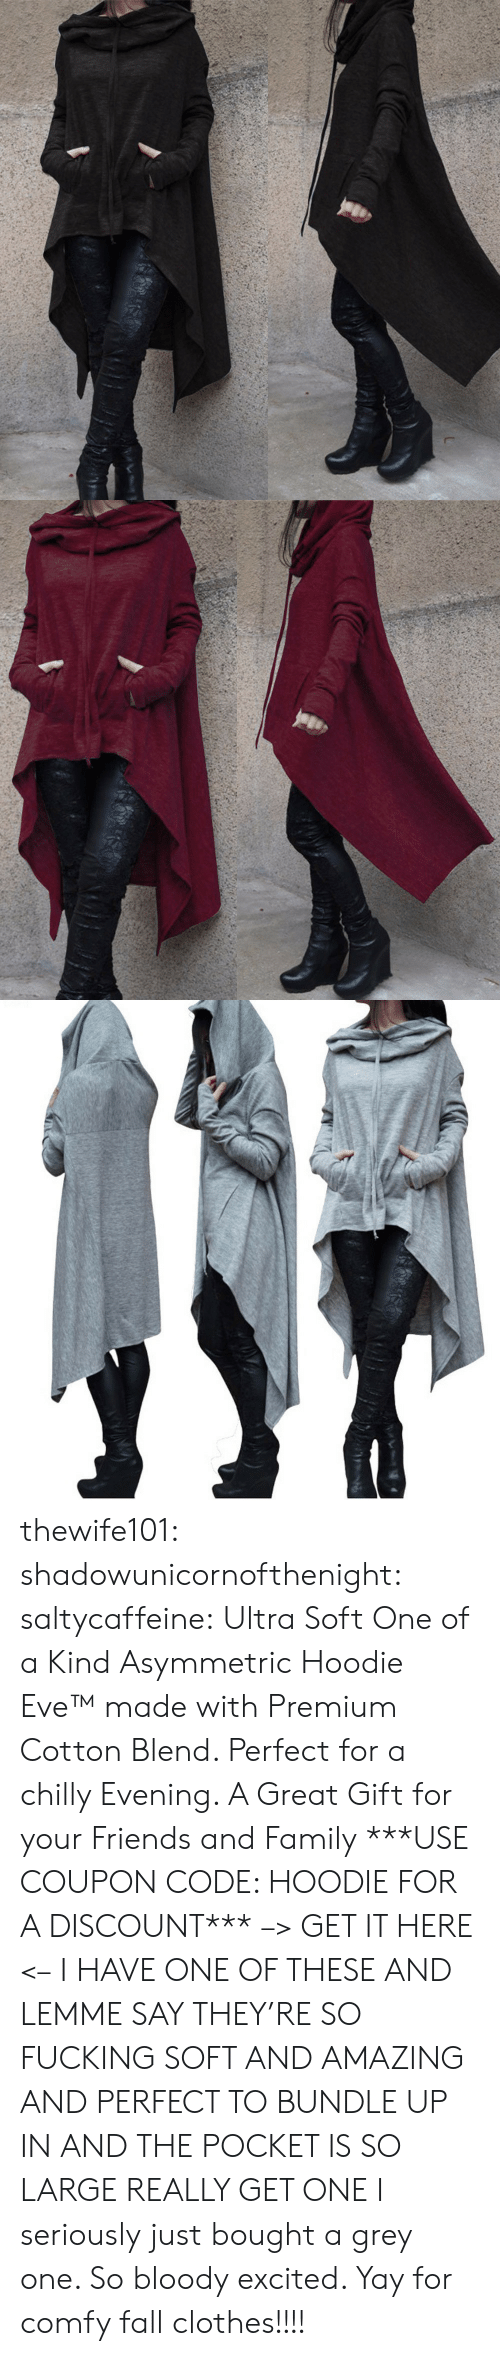 Clothes, Fall, and Family: thewife101:  shadowunicornofthenight:  saltycaffeine:  Ultra Soft One of a Kind Asymmetric Hoodie Eve™made with Premium Cotton Blend. Perfect for a chilly Evening. A Great Gift for your Friends and Family ***USE COUPON CODE: HOODIE FOR A DISCOUNT*** –> GET IT HERE <–   I HAVE ONE OF THESE AND LEMME SAY THEY'RE SO FUCKING SOFT AND AMAZING AND PERFECT TO BUNDLE UP IN AND THE POCKET IS SO LARGE REALLY GET ONE   I seriously just bought a grey one. So bloody excited. Yay for comfy fall clothes!!!!